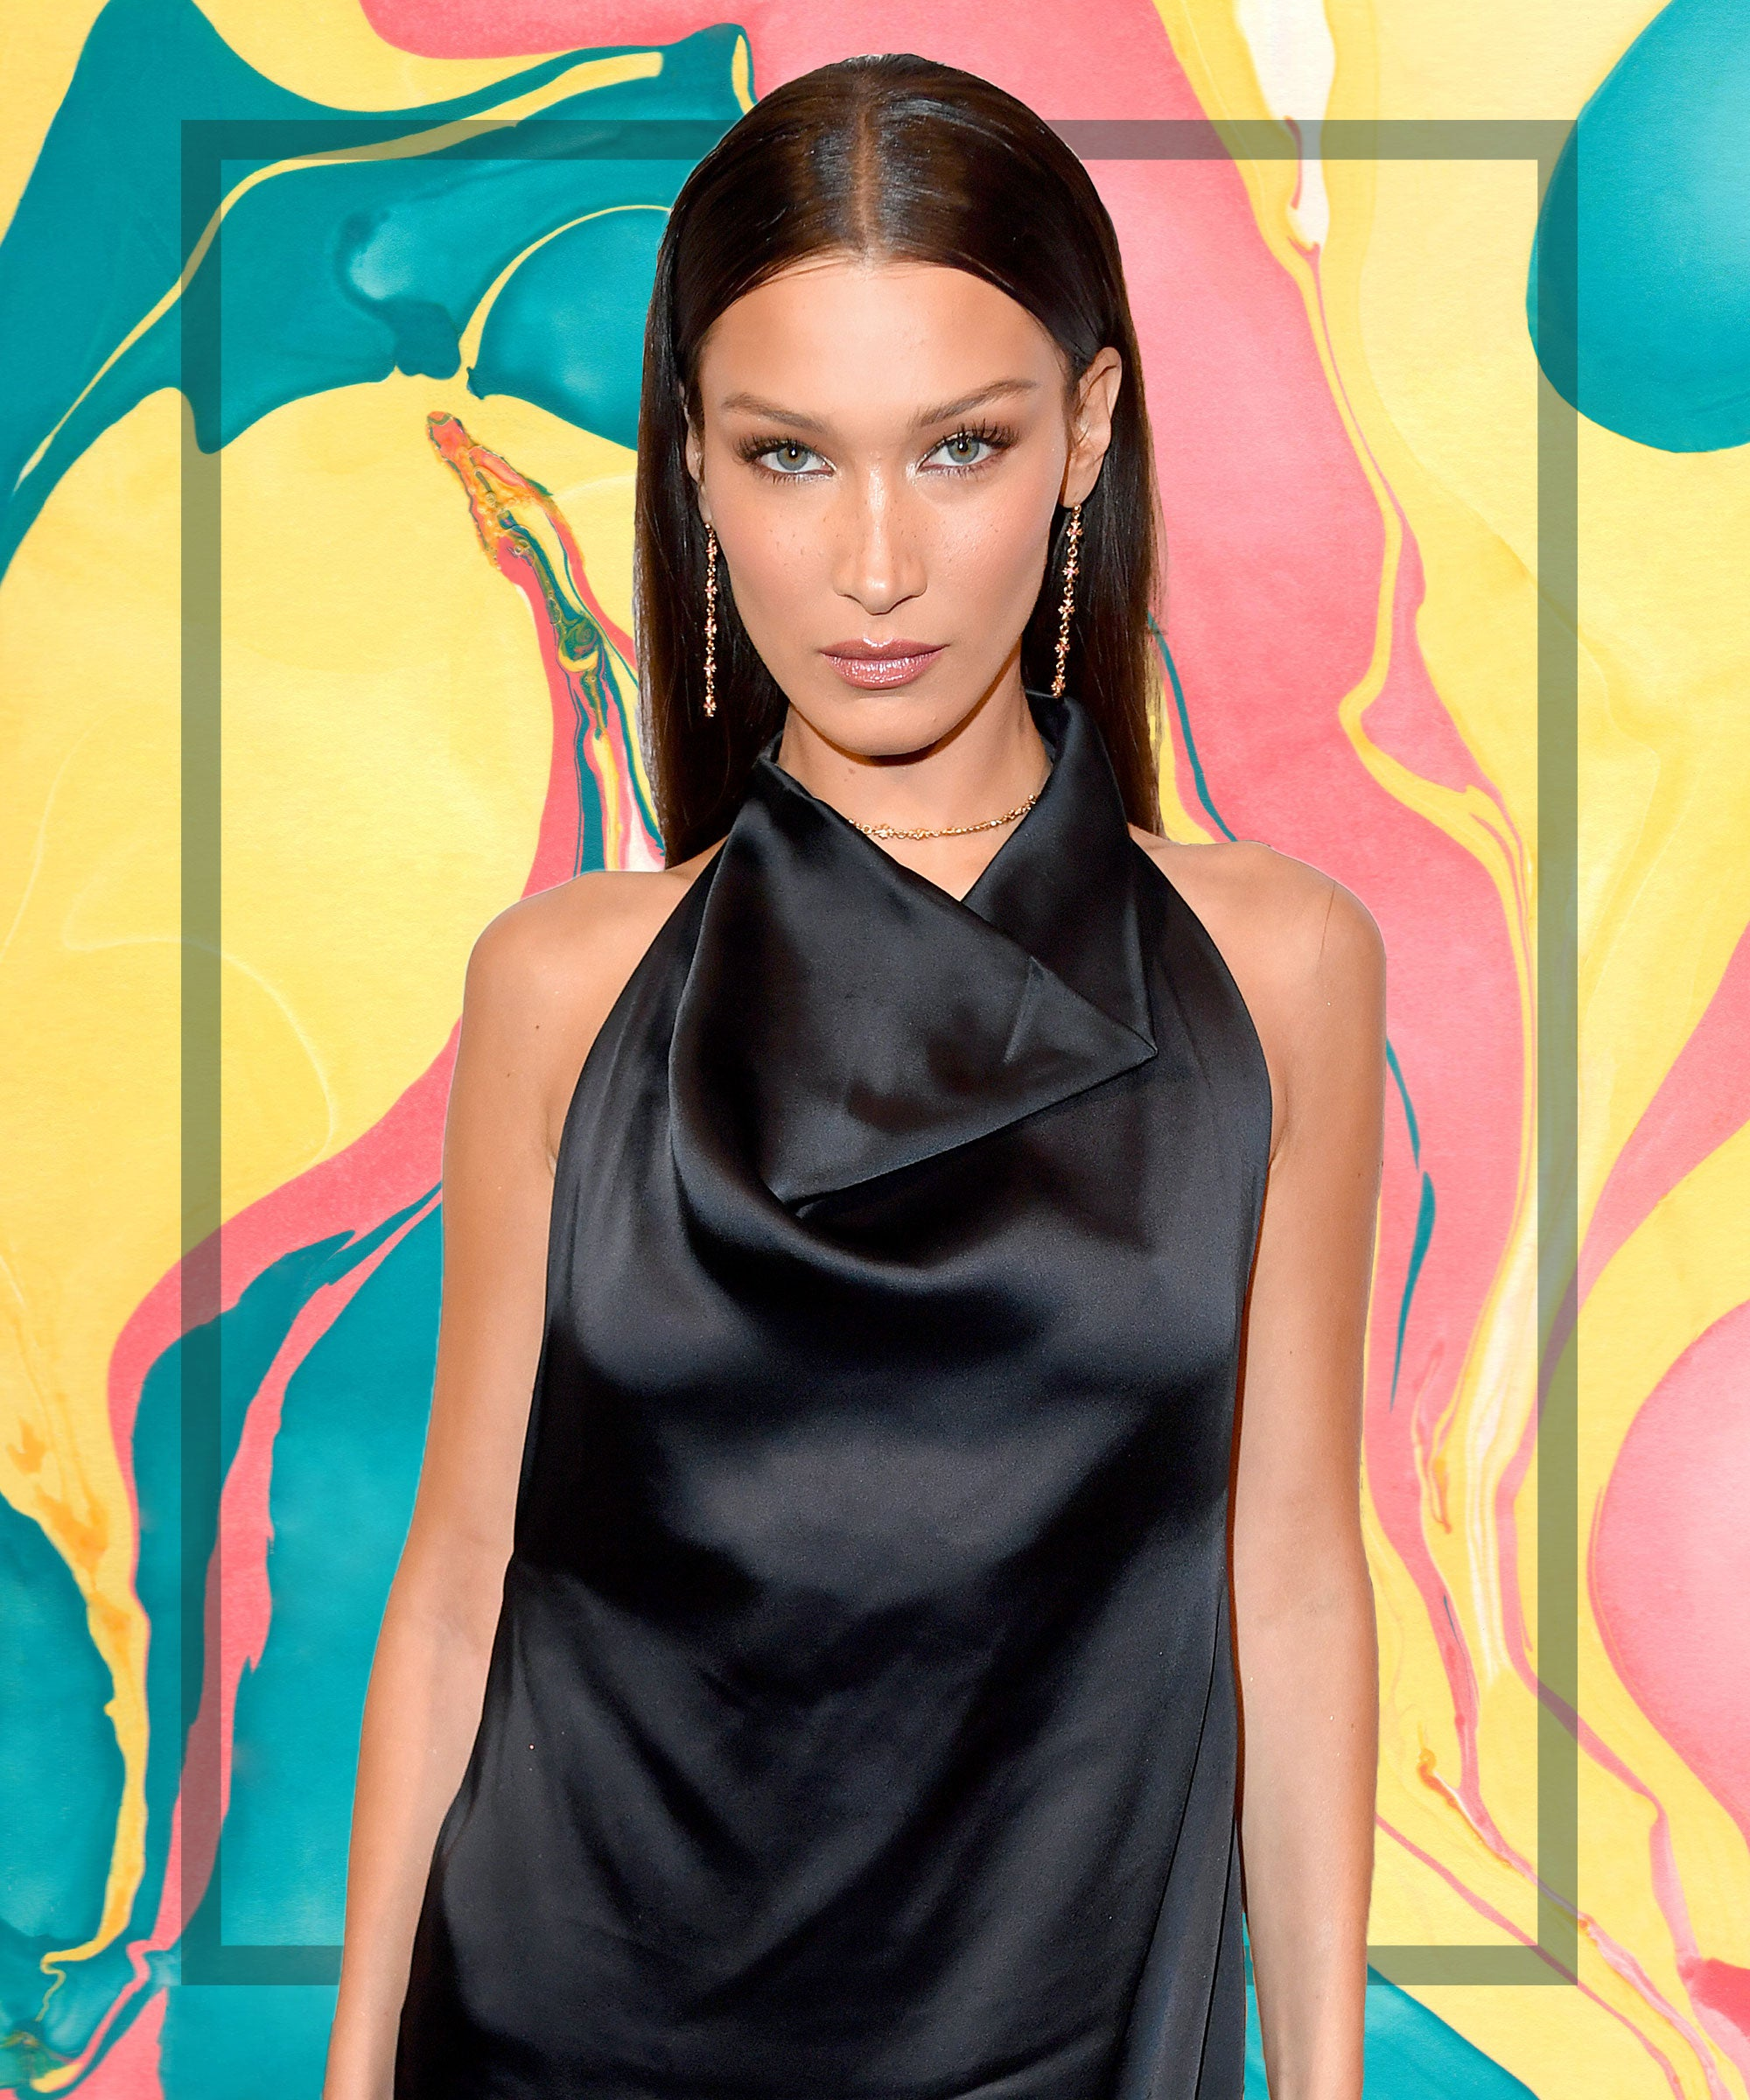 Bella Hadid Is Giving Major '70s Cher Vibes With Her New Look